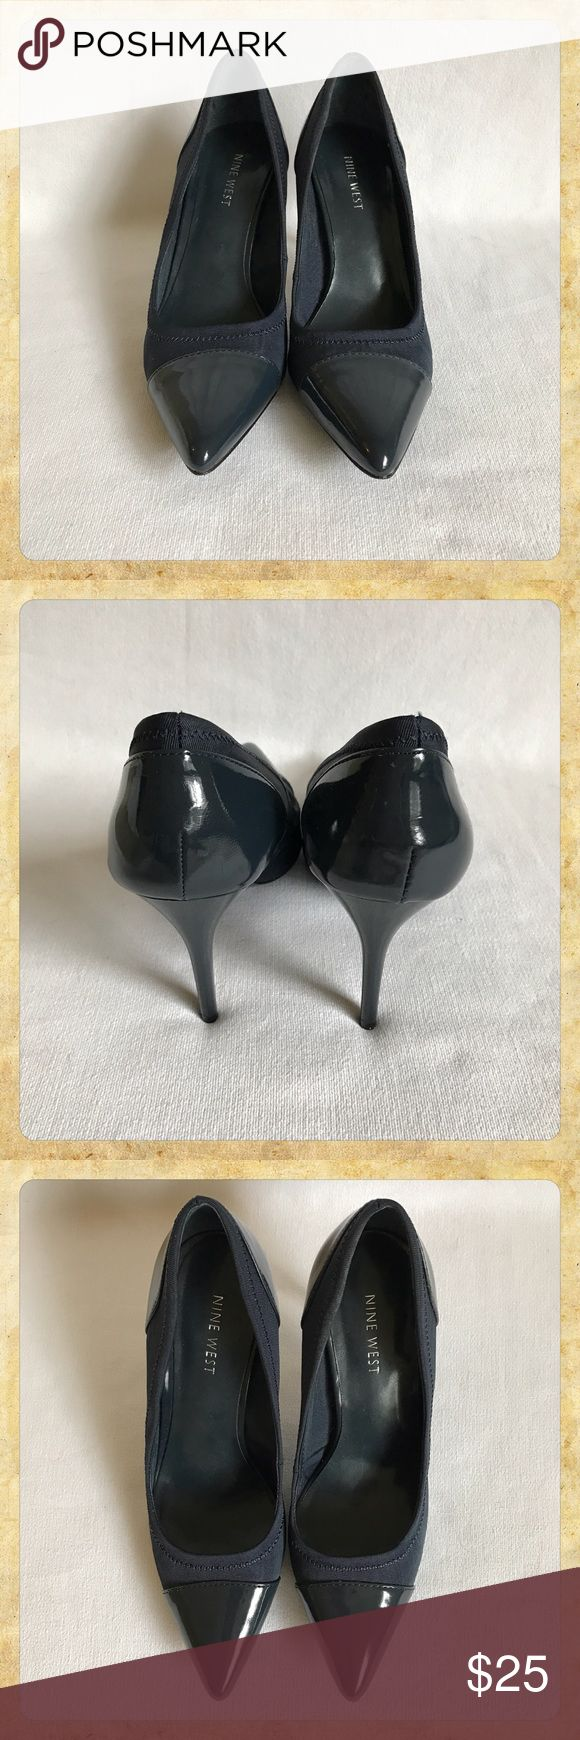 Nine West Navy High Heel Shoe, Sz 7.5 Ribbed textile with patent tips on the toes and accents on the backs and heels. There are stick-ons on the bottom of the shoe to prevent slipping. 4-inch heel.  These shoes show hardly any wear; please see pictures. Thanks!  Please feel free to ask any questions or use the offer button to make an offer. Everything is negotiable! Nine West Shoes